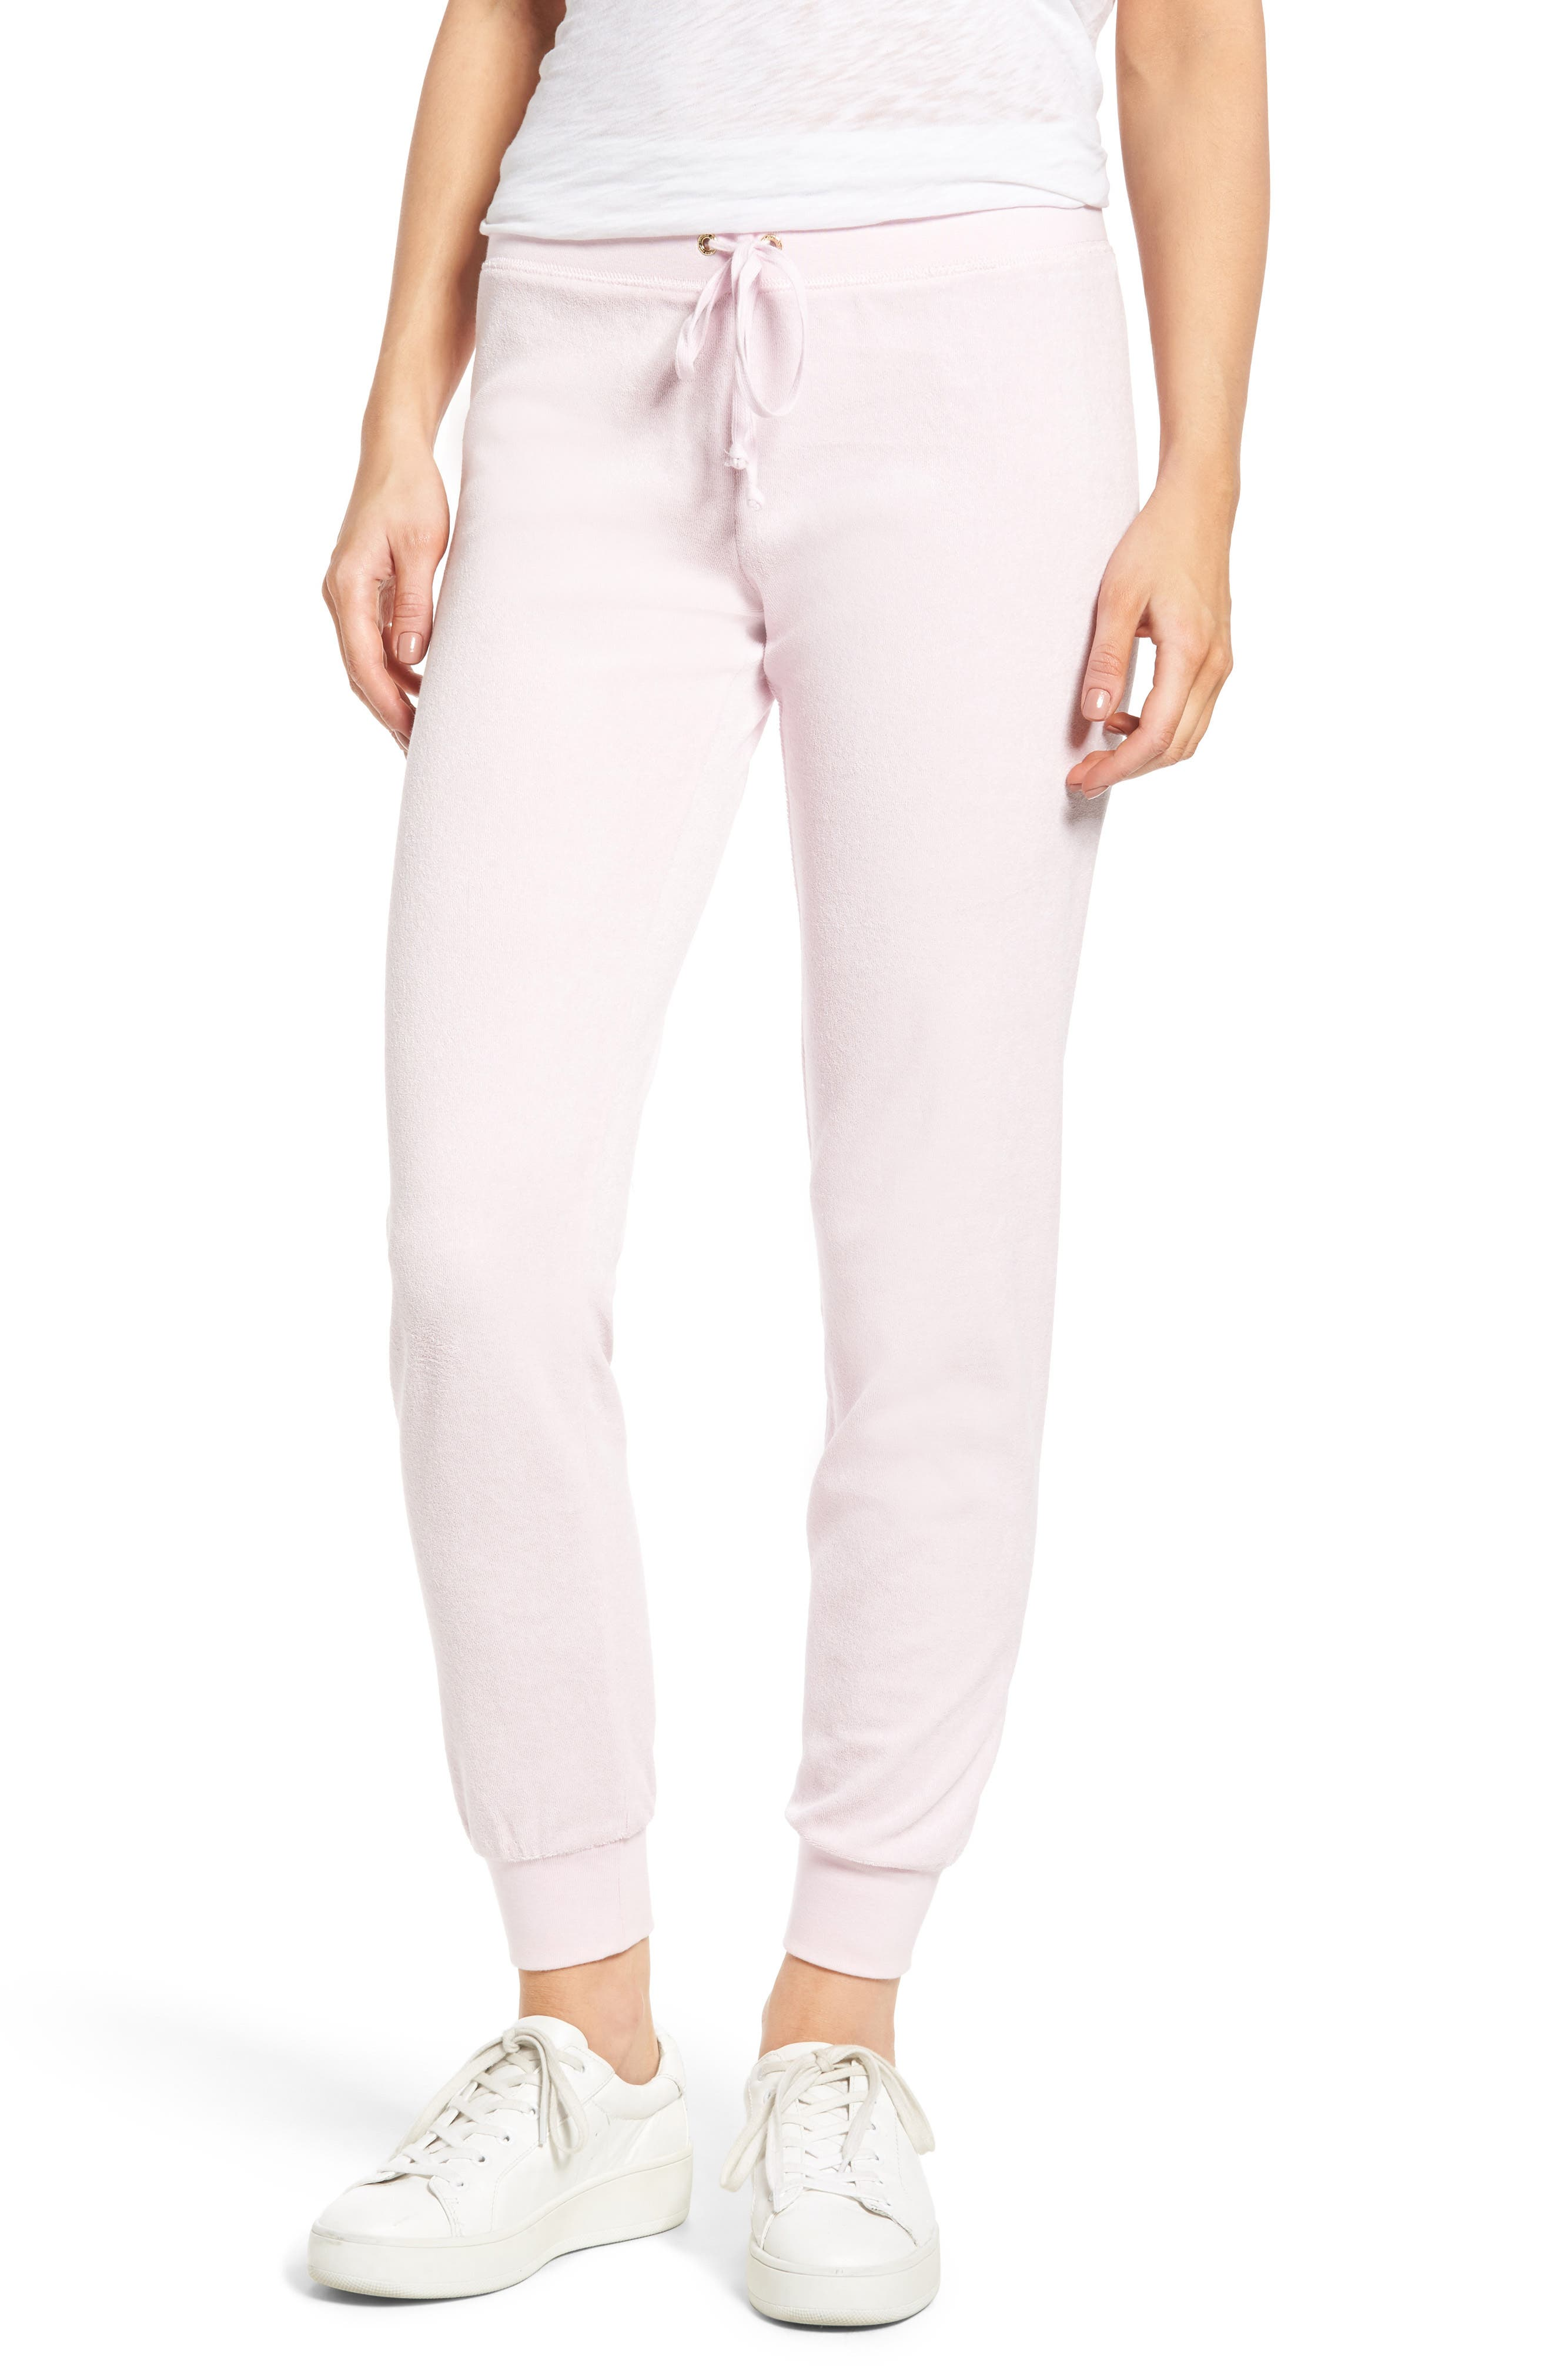 Main Image - Juicy Couture Zuma Microterry Track Pants